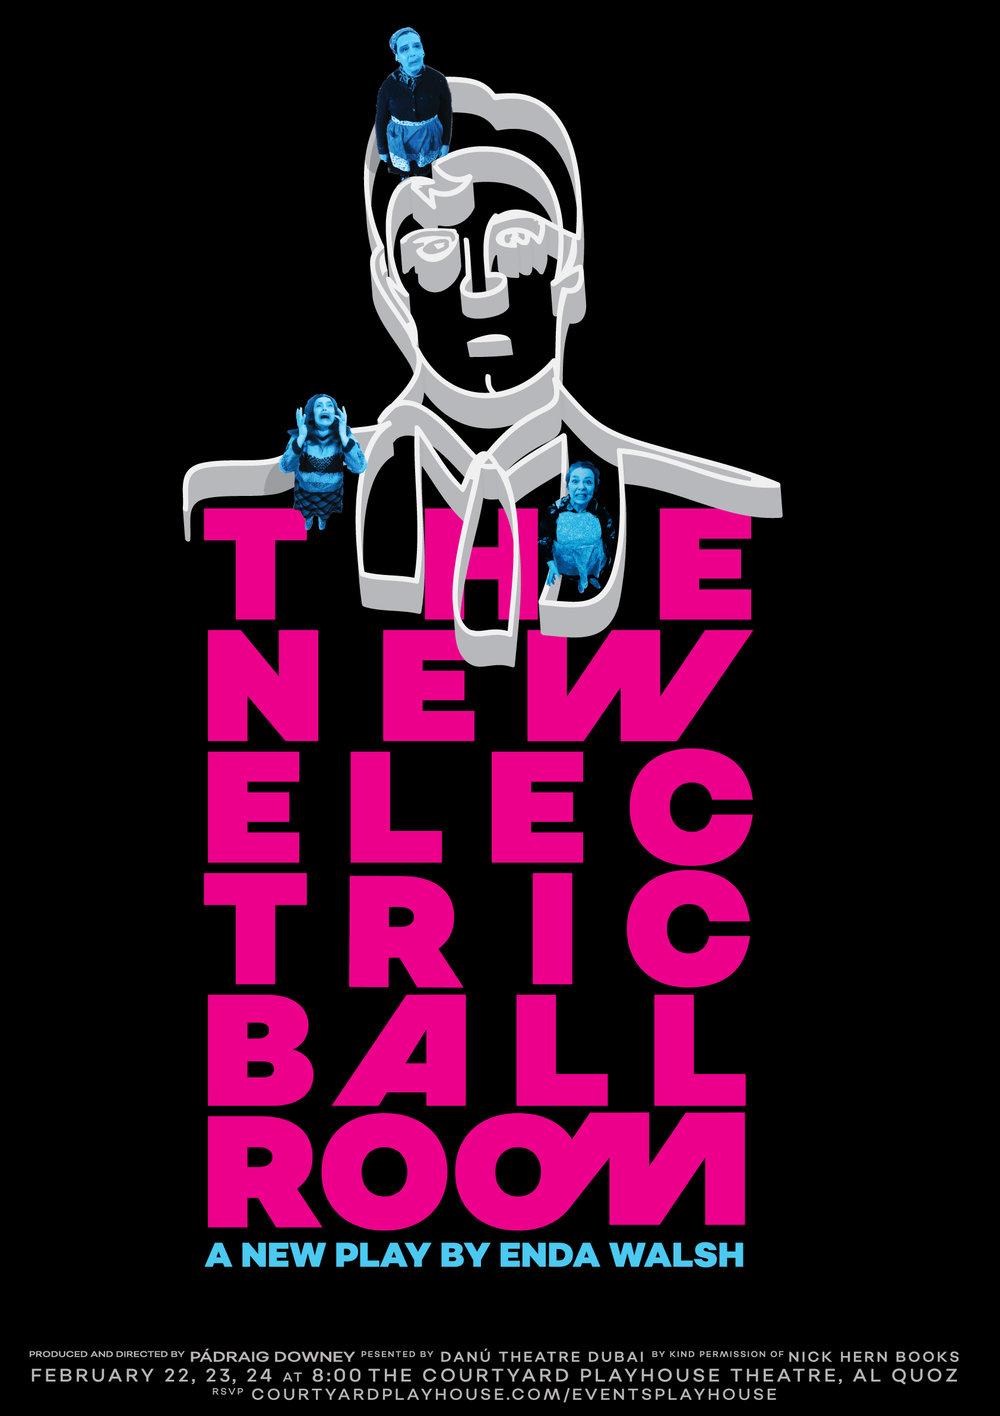 the-new-electric-ballroom-01.19.18-WEB.jpg